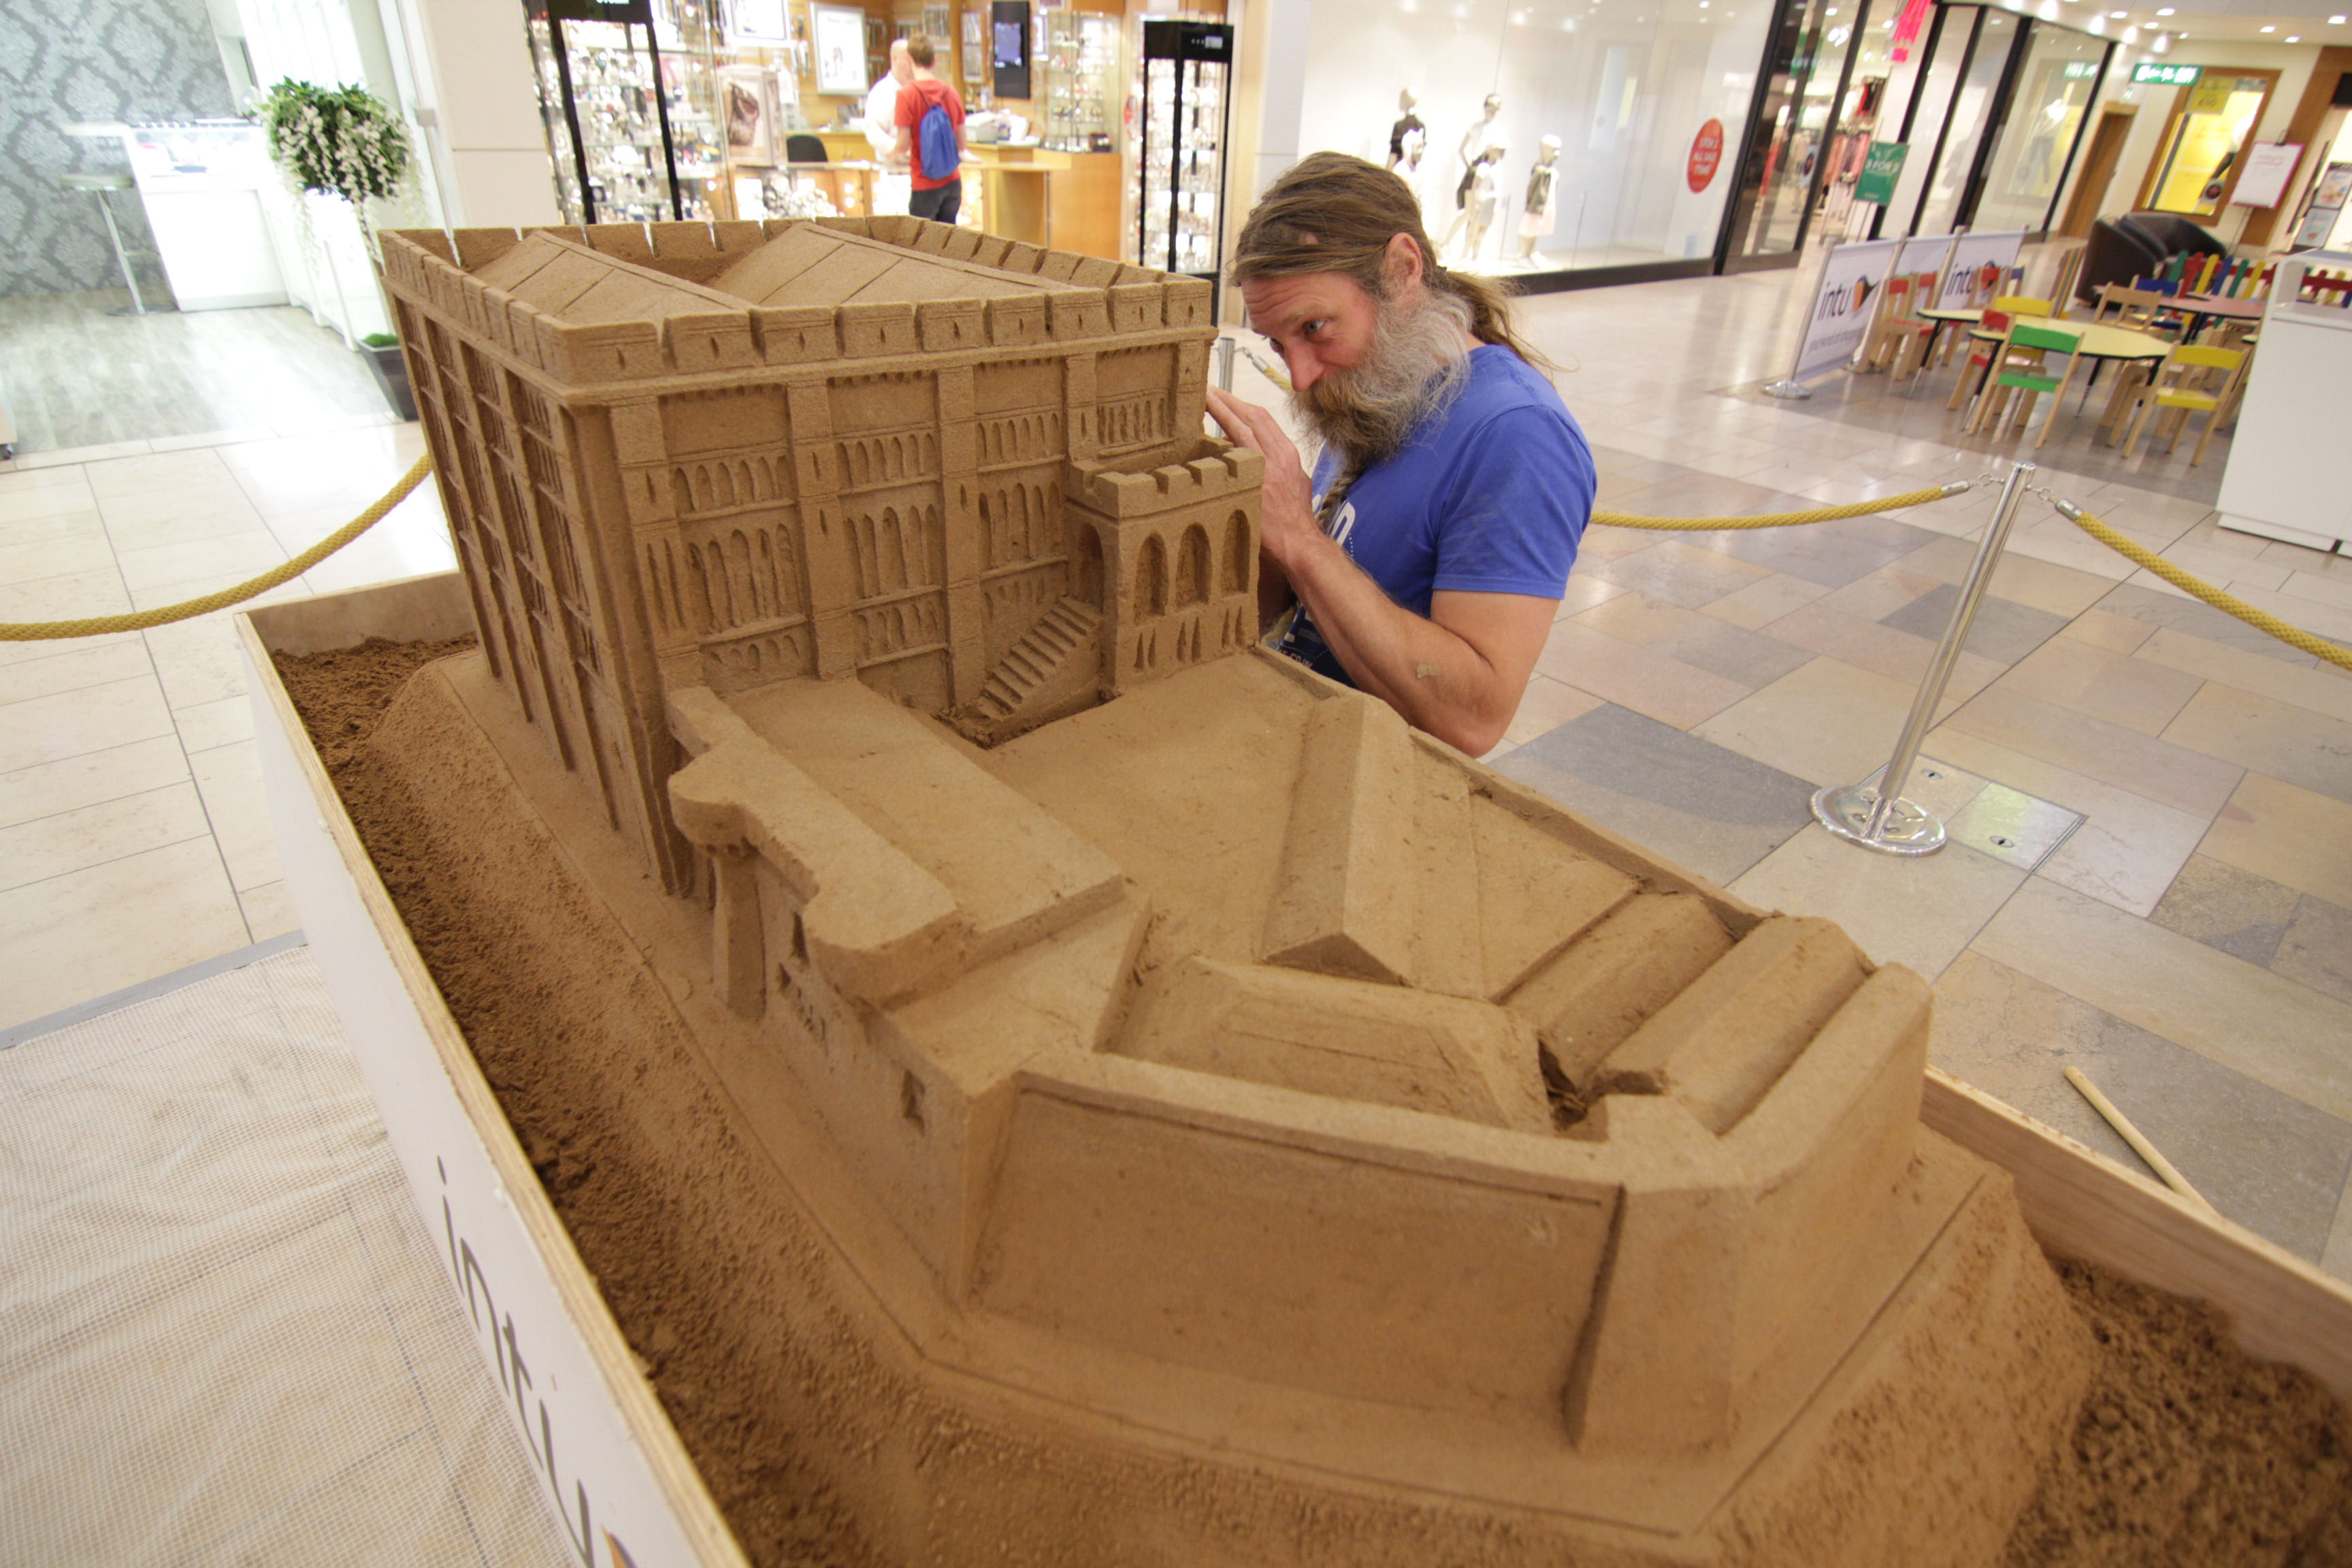 sand carving intu shopping centre norwich